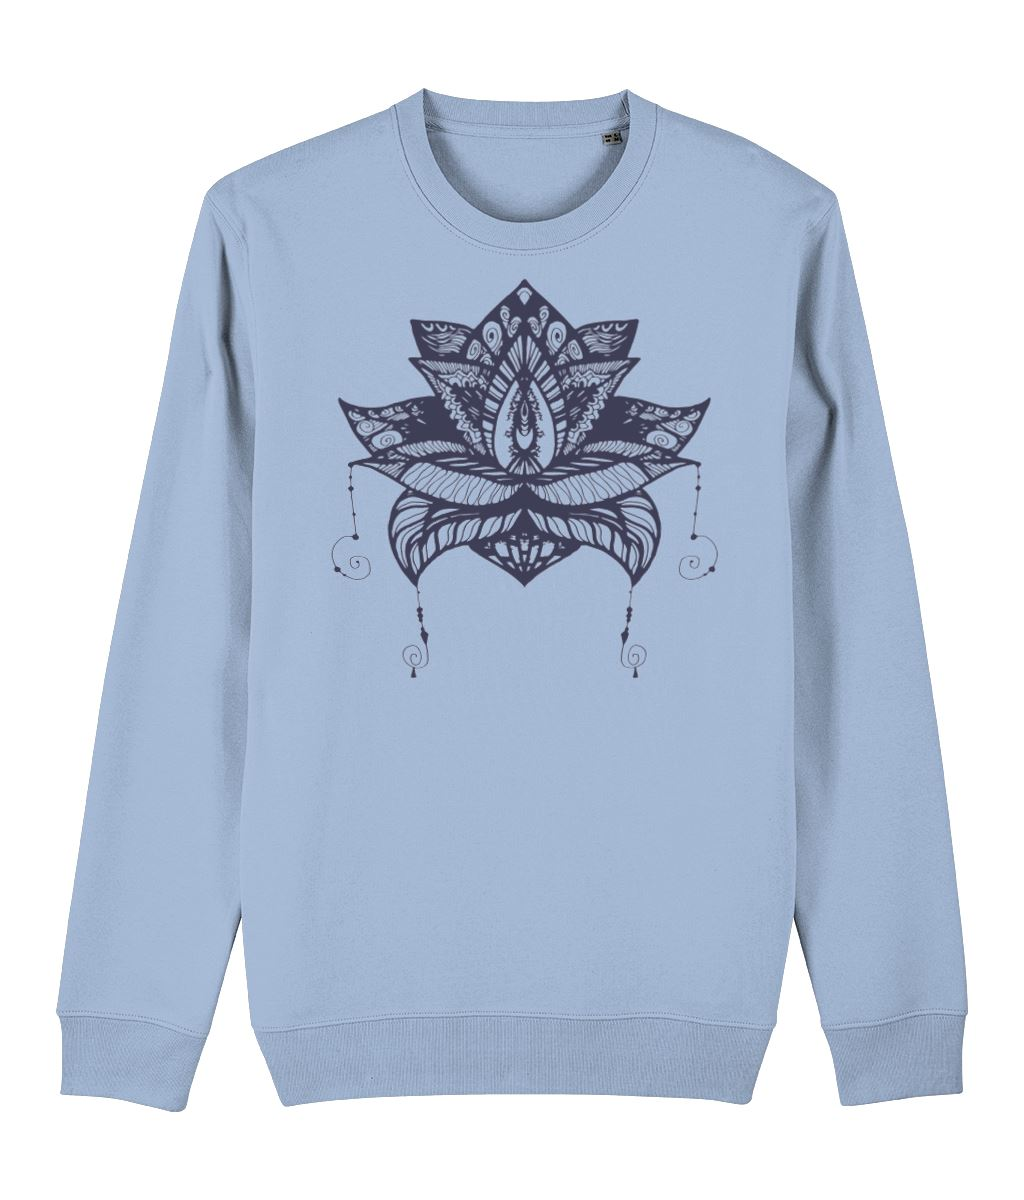 Lotus Flower V Sweatshirt Clothing IndianBelieves Sky Blue X-Small